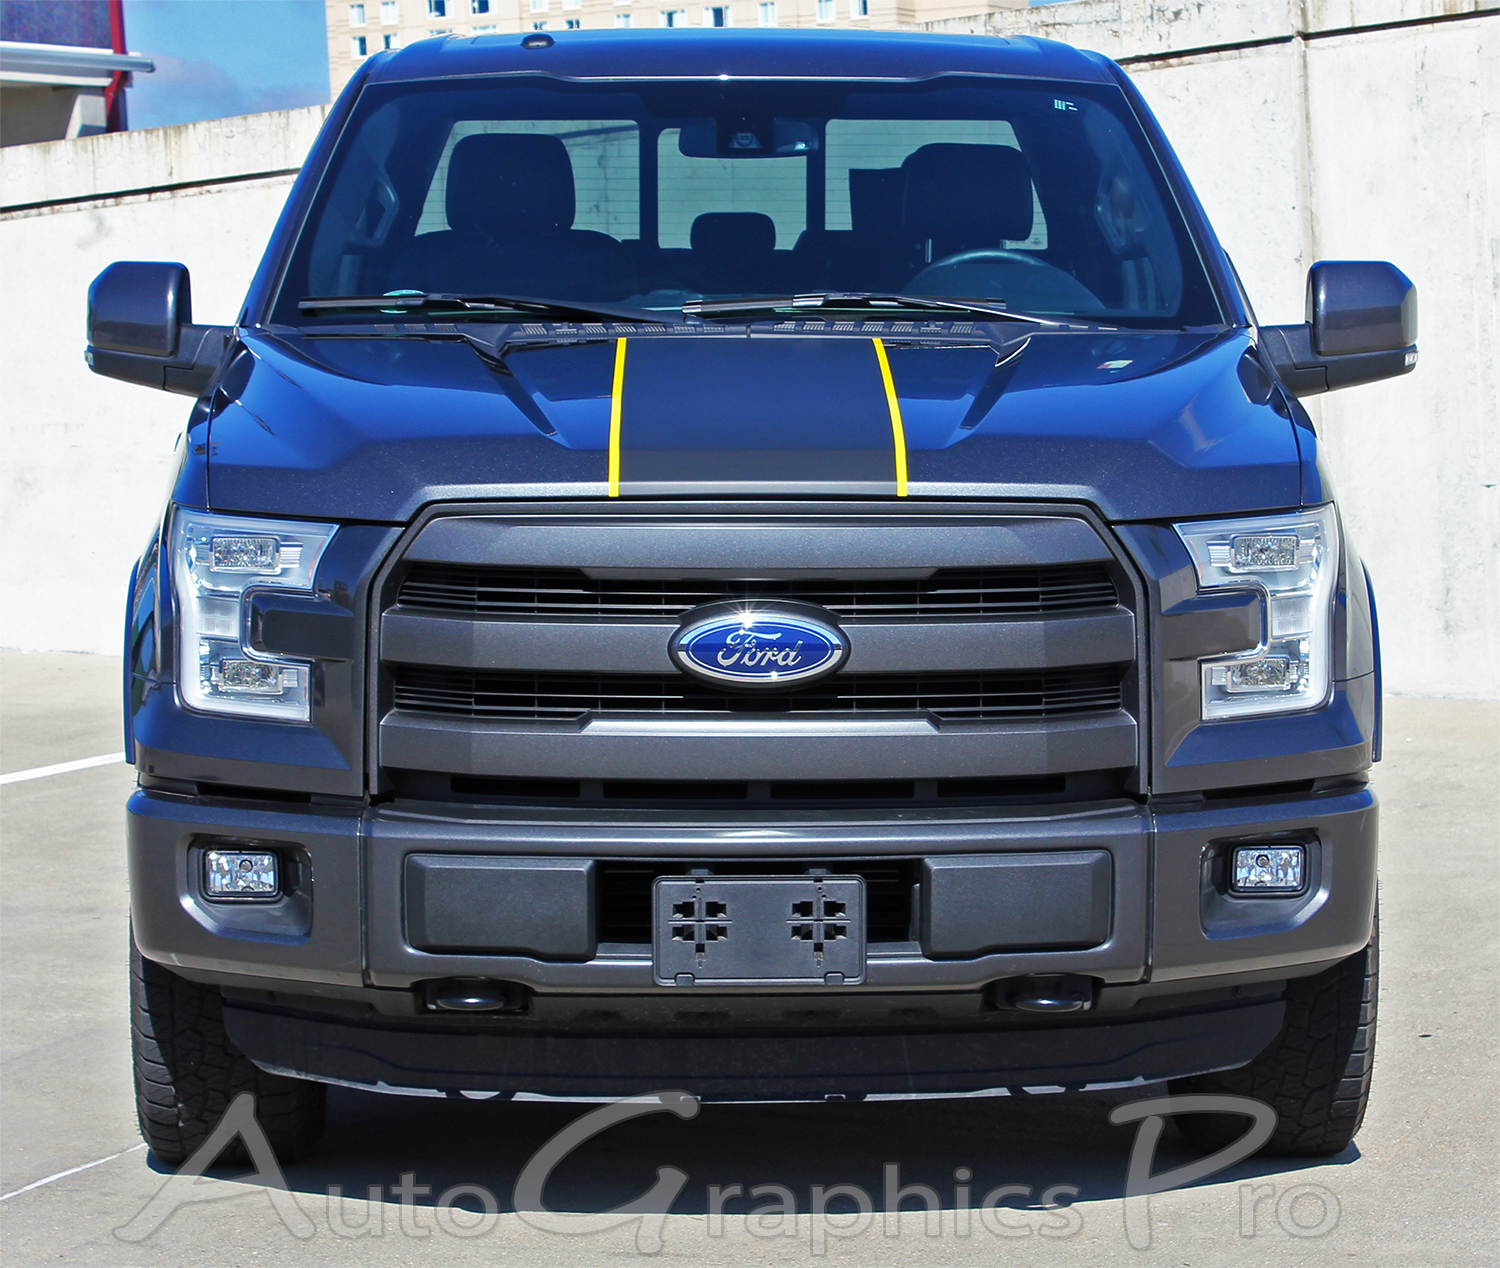 241060 2002 Mountaineer Explorer 4 6 No Start Won T Even Try together with Ford F 150 ROCKER STROBES Lower Rocker Stripes Vinyl Decal Graphics p 158 besides Ford Freestar Cabin Air Filter Location furthermore 2015 2016 Ford F 150 BORDERLINE Center Racing Stripe W Outline Vinyl Decal Graphic Stripes  p 561 besides Ford F150 Why Wont My Truck Start 429638. on 2005 ford f 150 hood